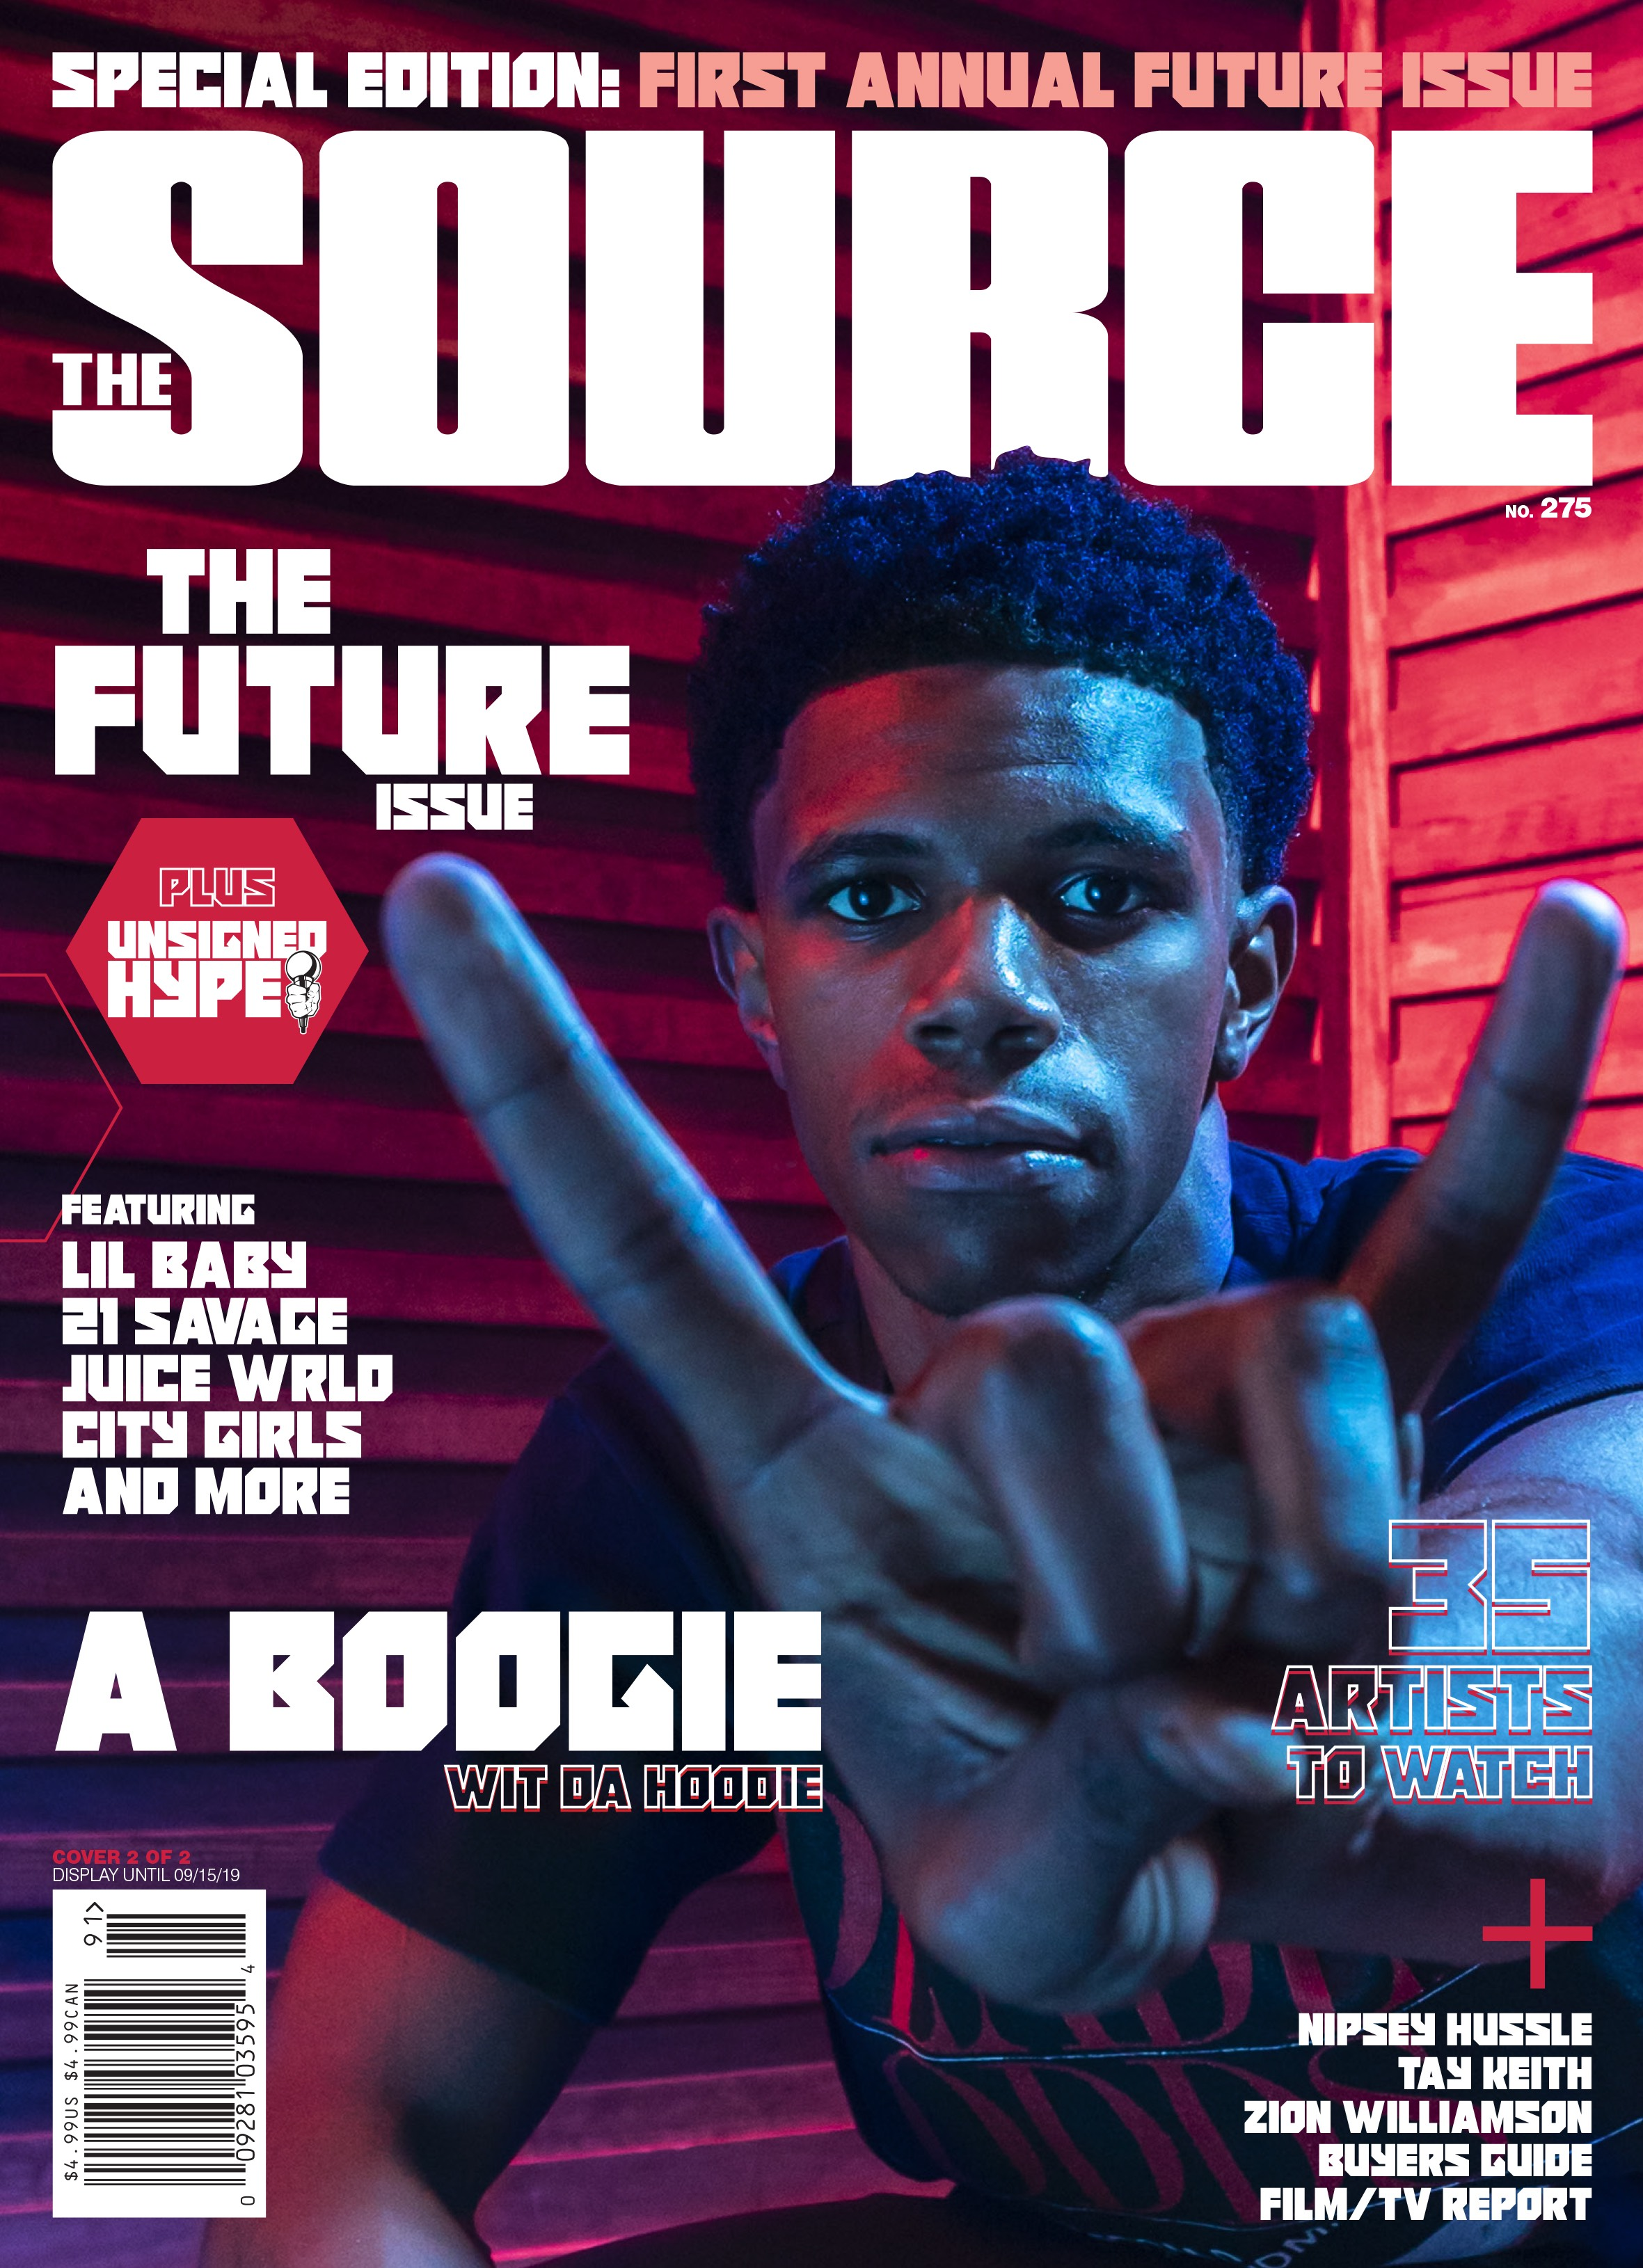 Exclusive: A Boogie wit da Hoodie Represents New York City on the Cover of The Source's Inaugural 'The Future' Issue